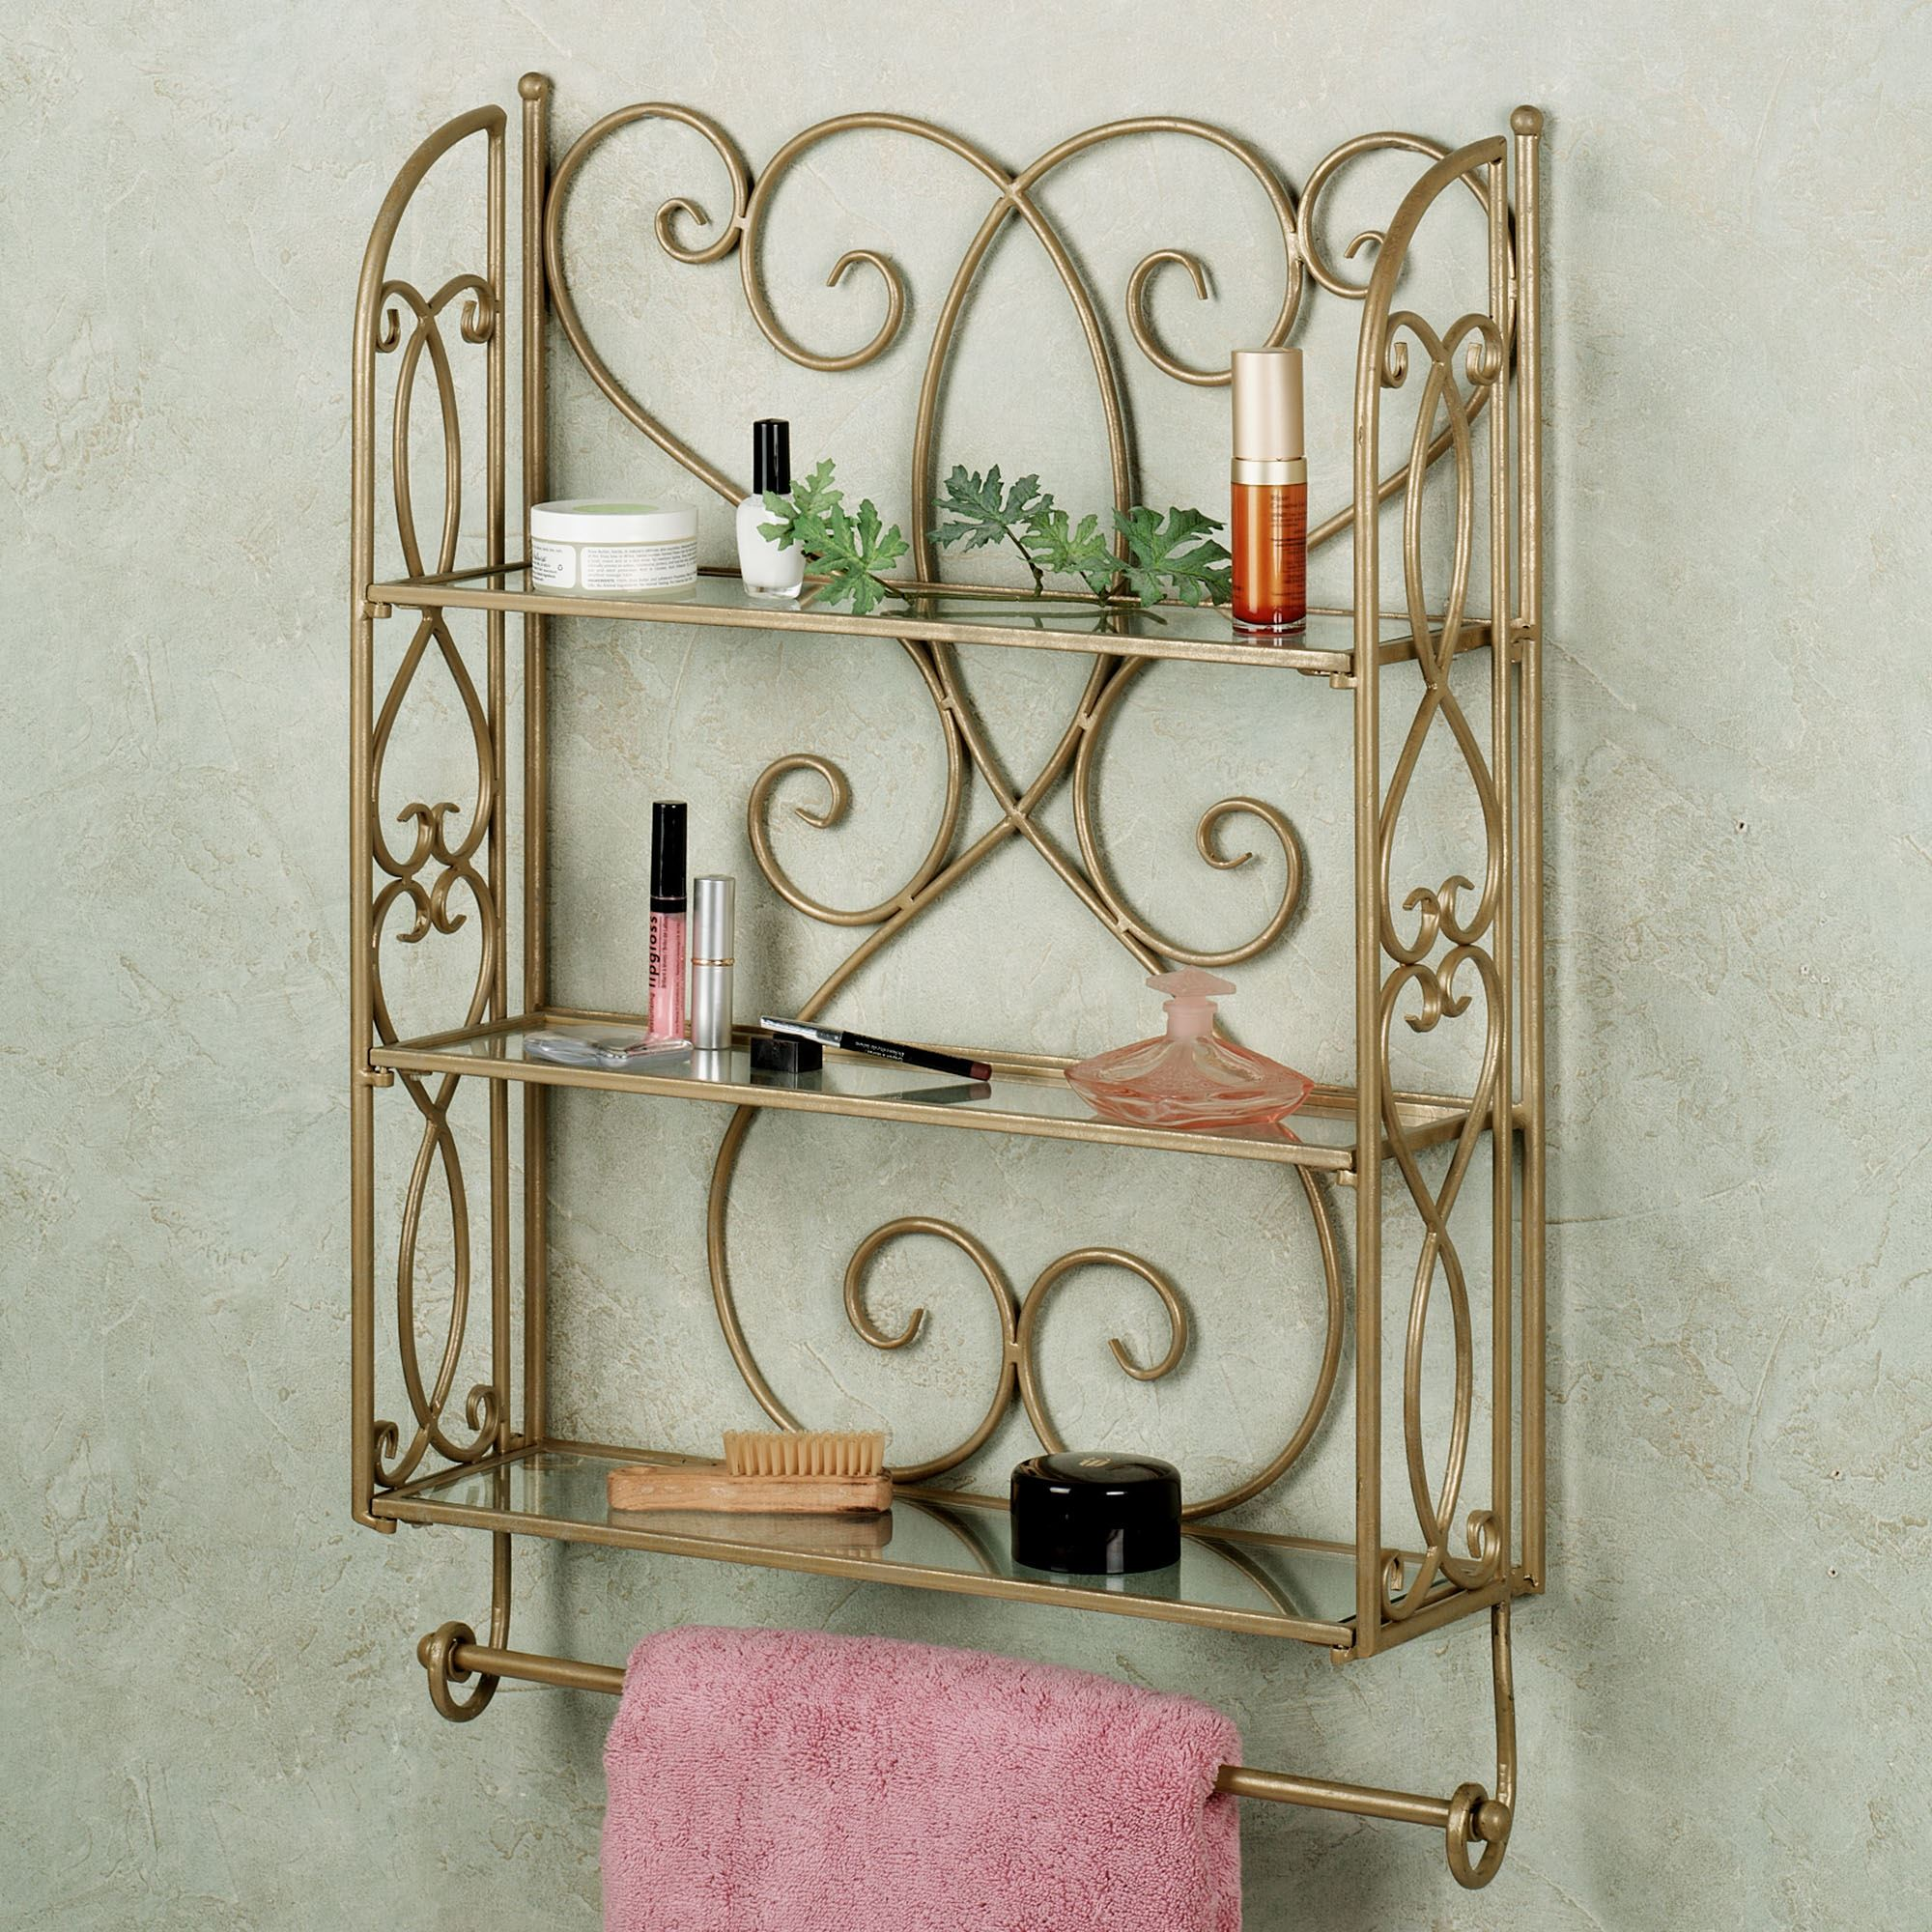 Gianna Wall Shelf with Towel Bar. Touch to zoom